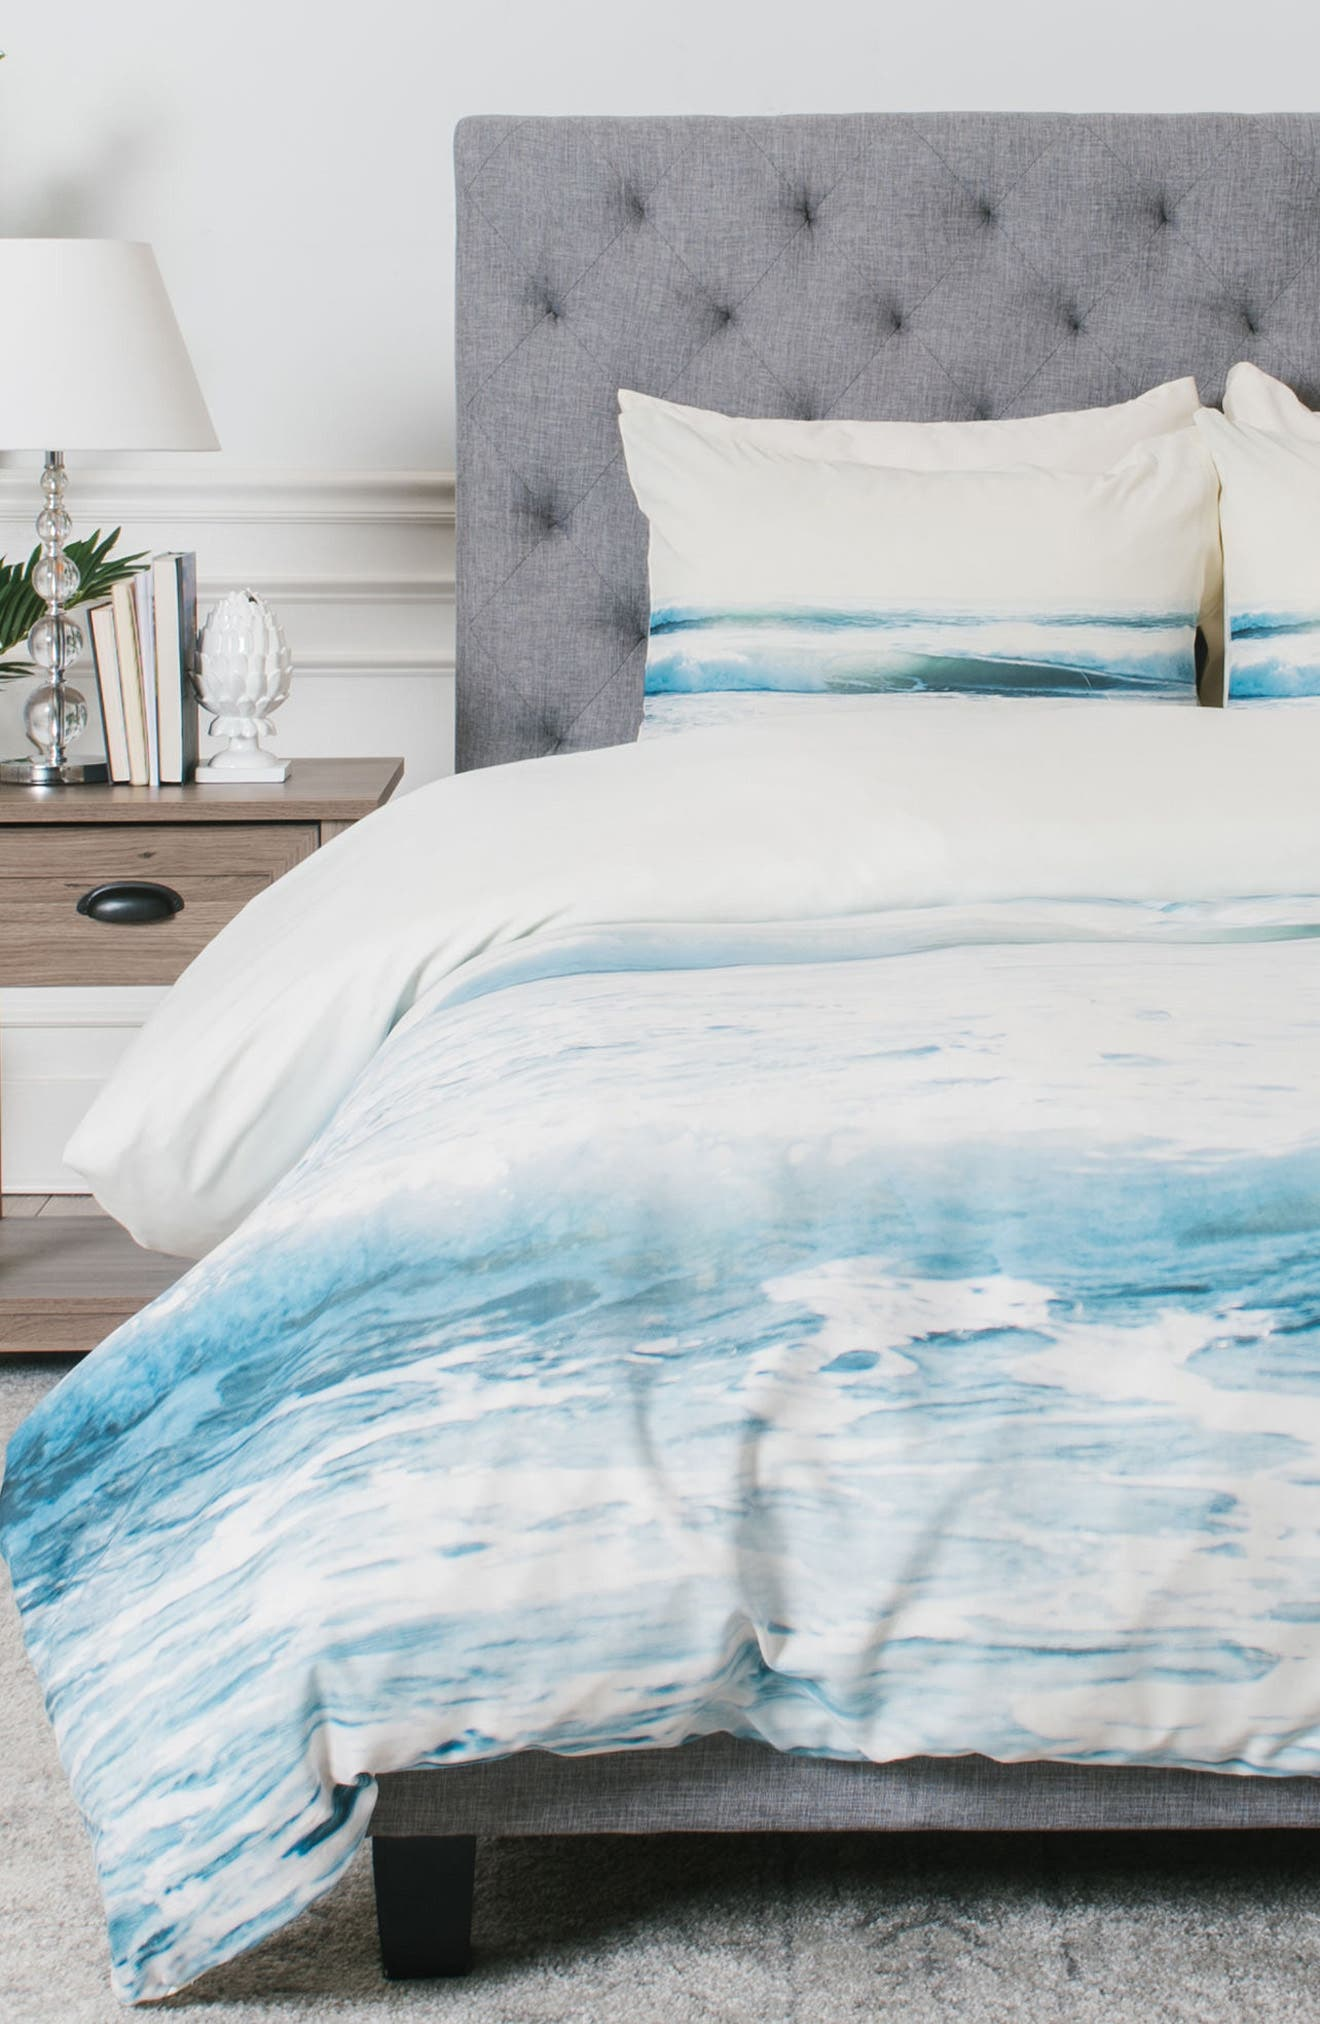 DENY DESIGNS Ride Waves Duvet Cover & Sham